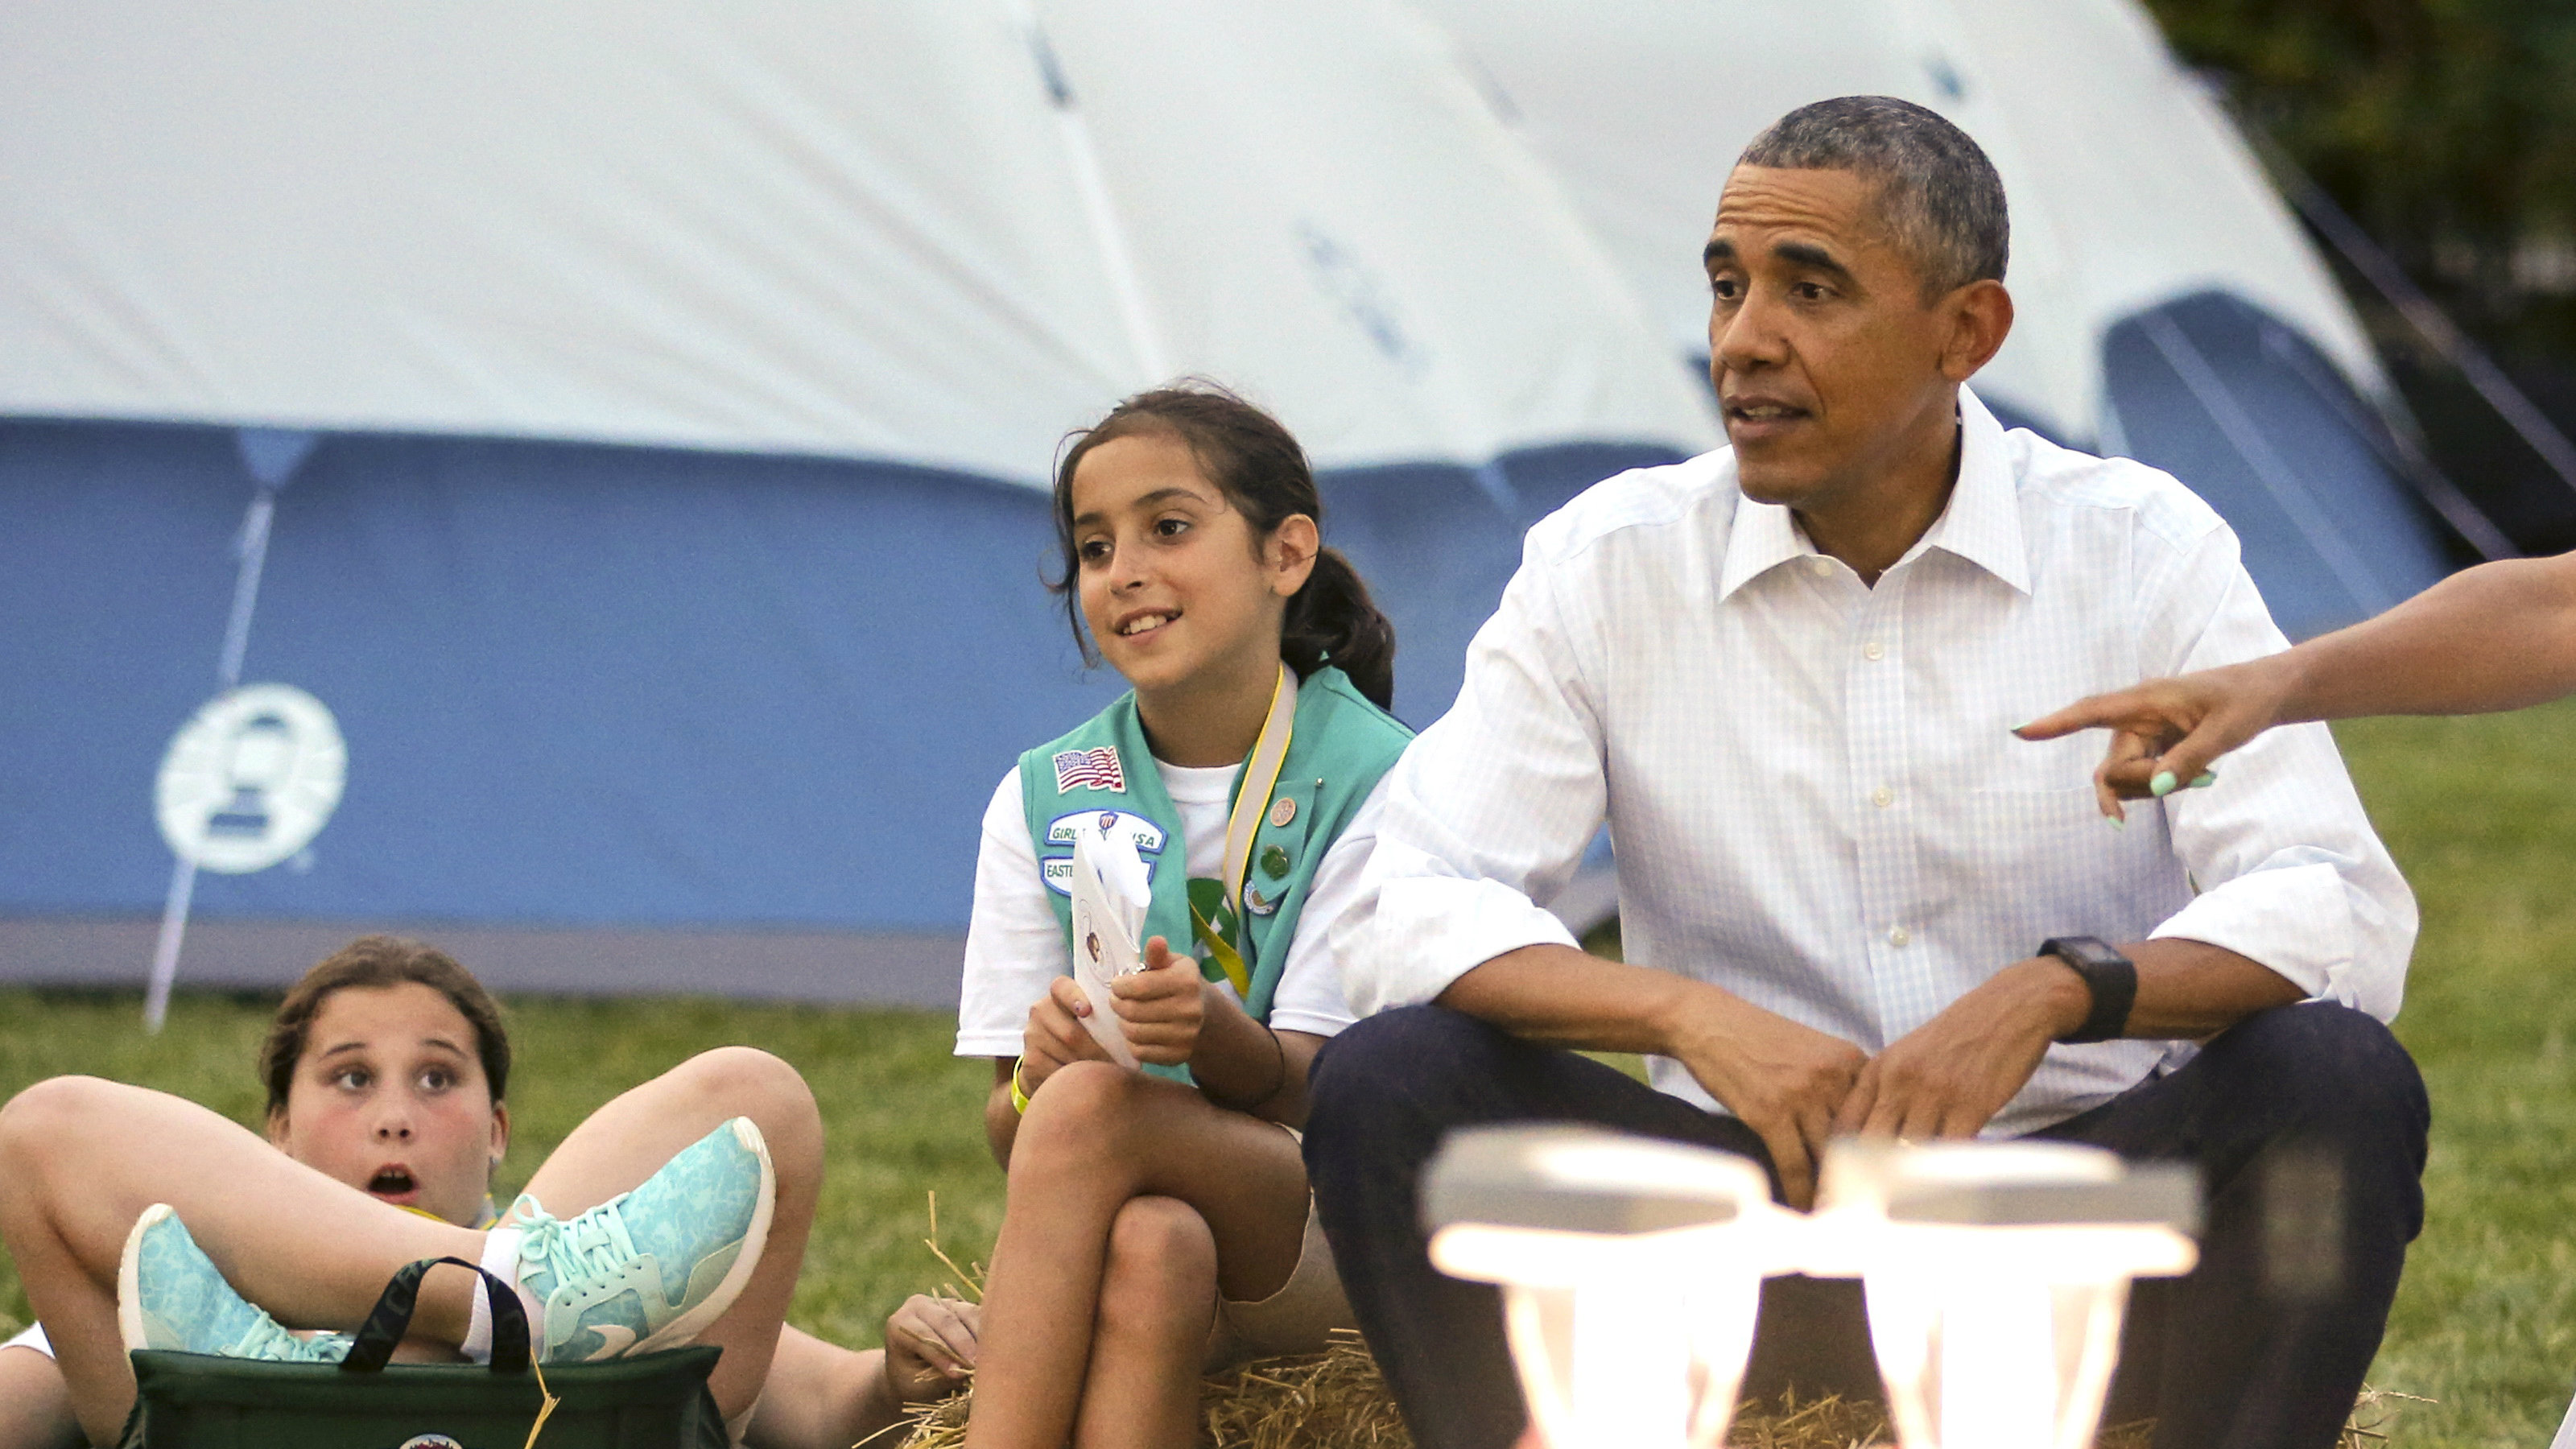 Barack Obama sitting with two girl scouts.